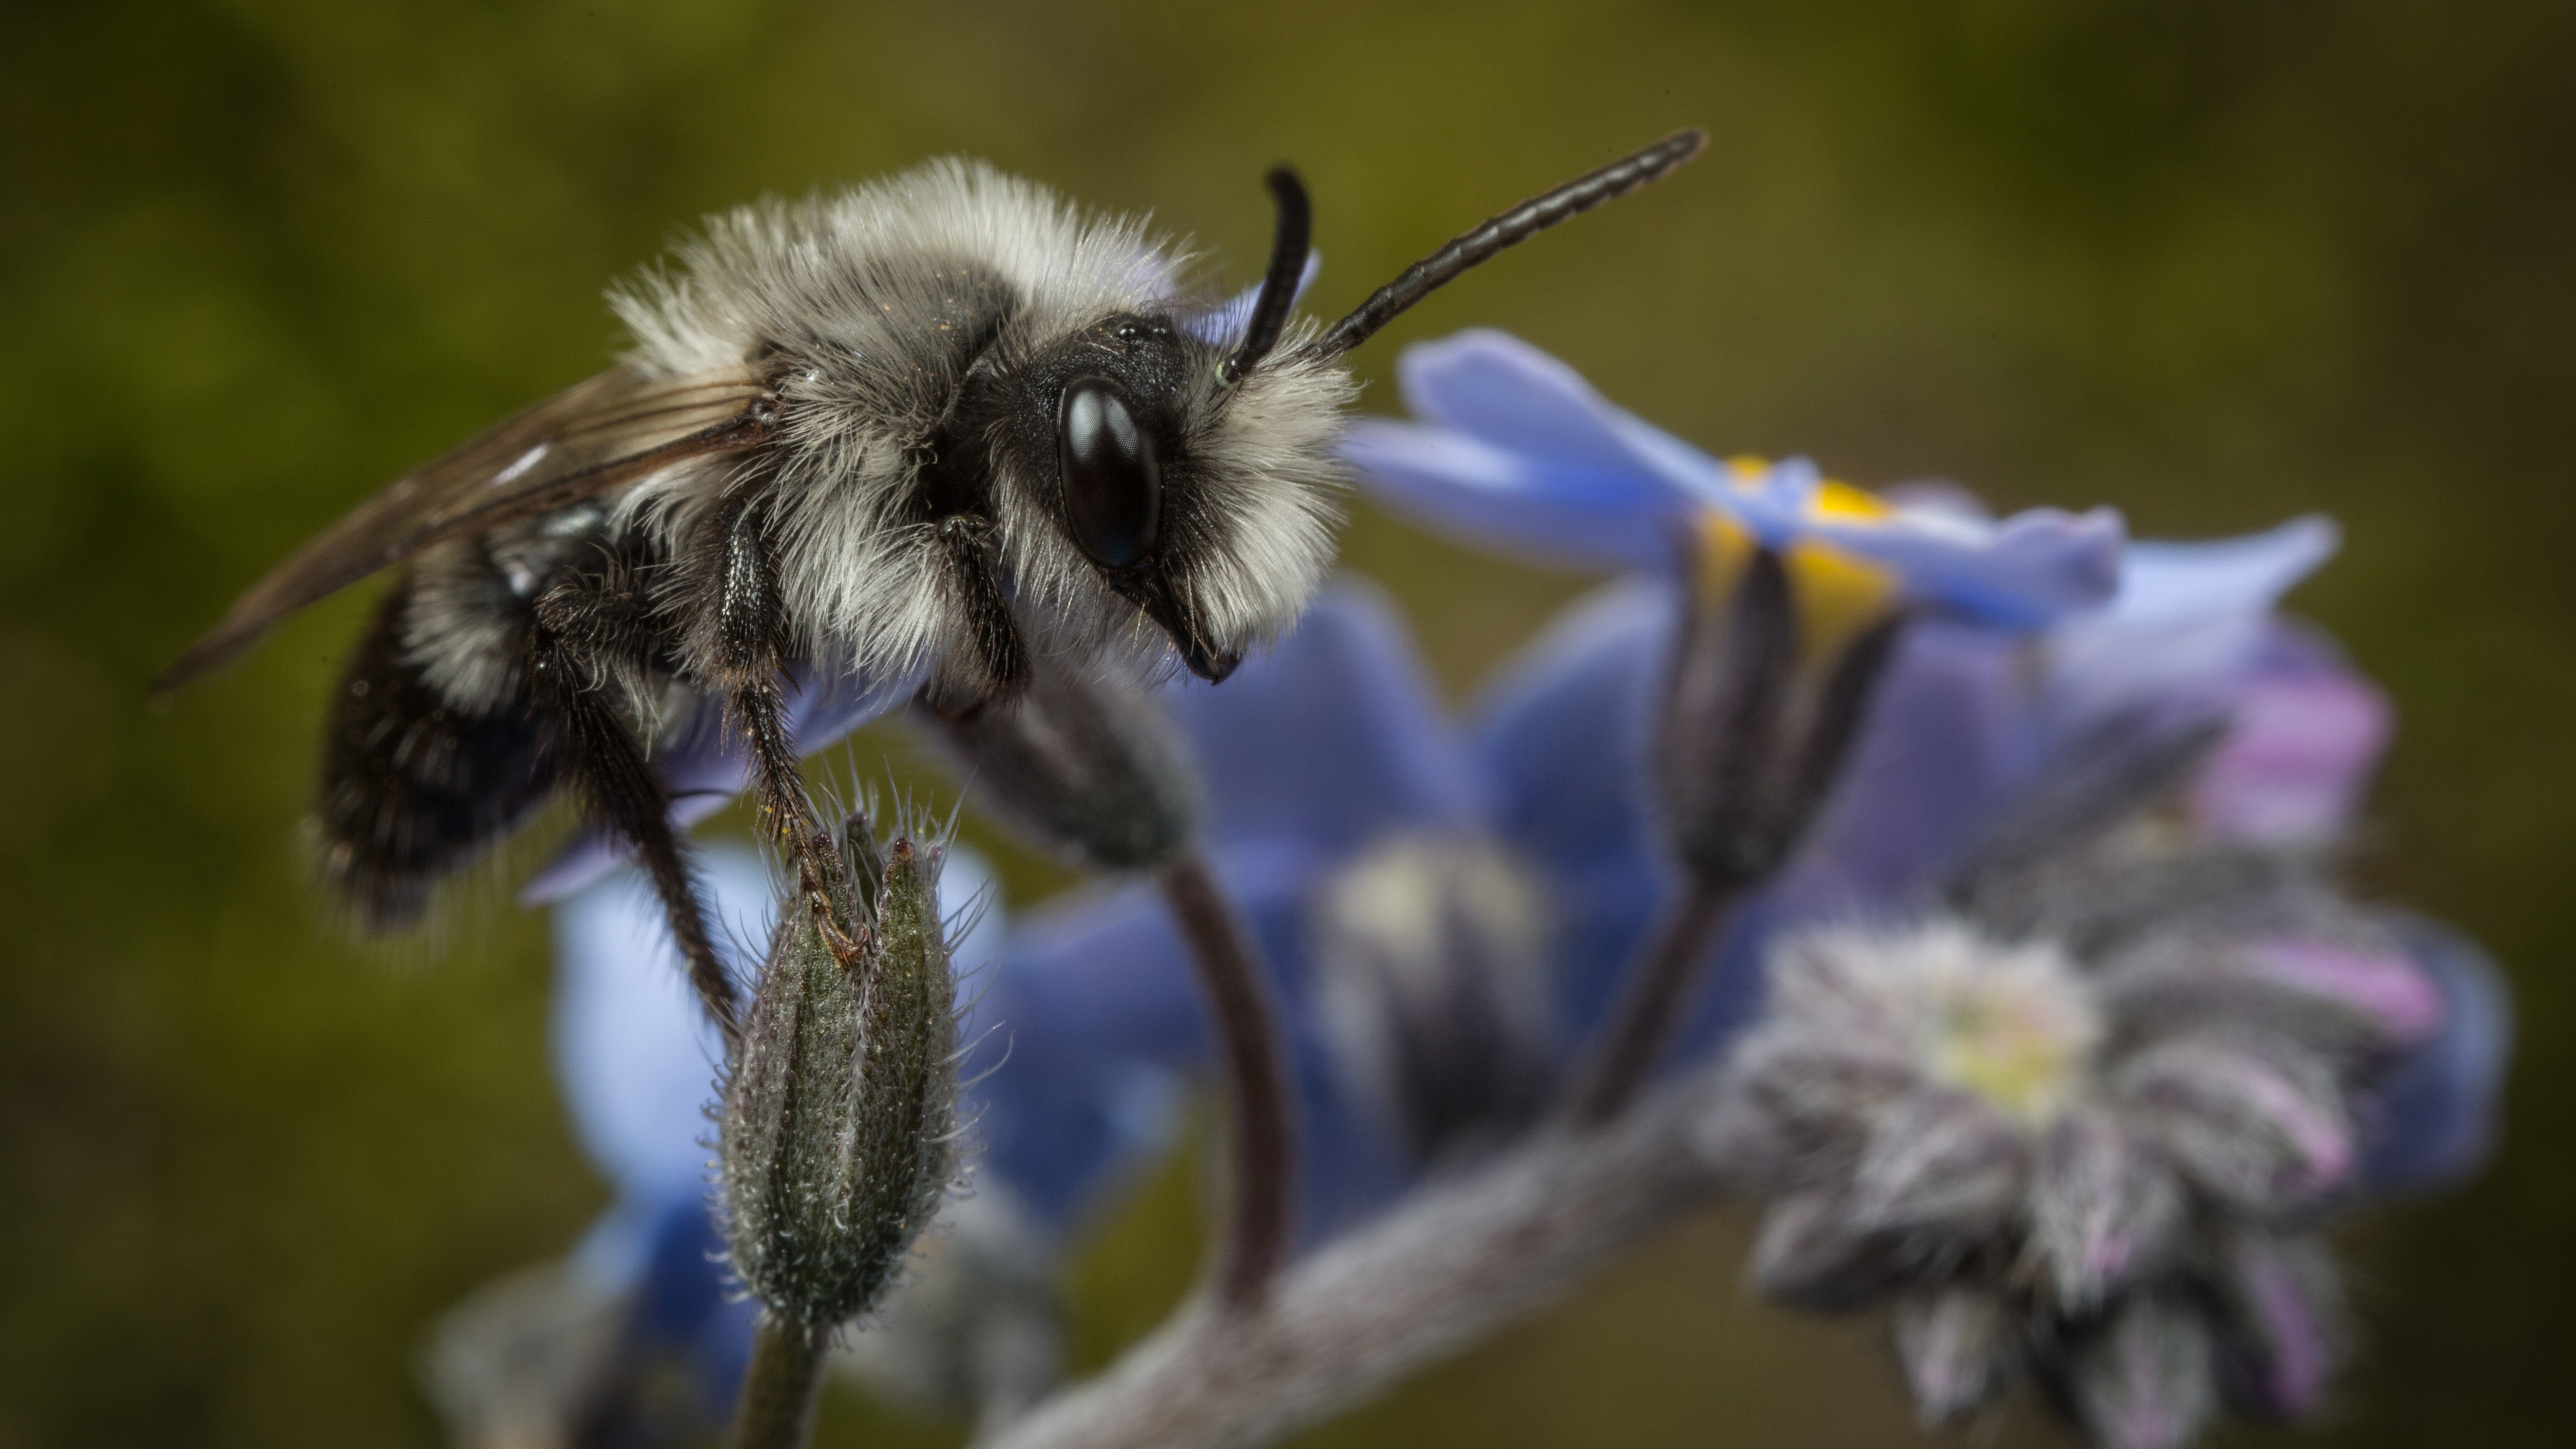 Attract Bees - Attract mining bee - Male Ashy Mining-bee (Andrena cineraria)